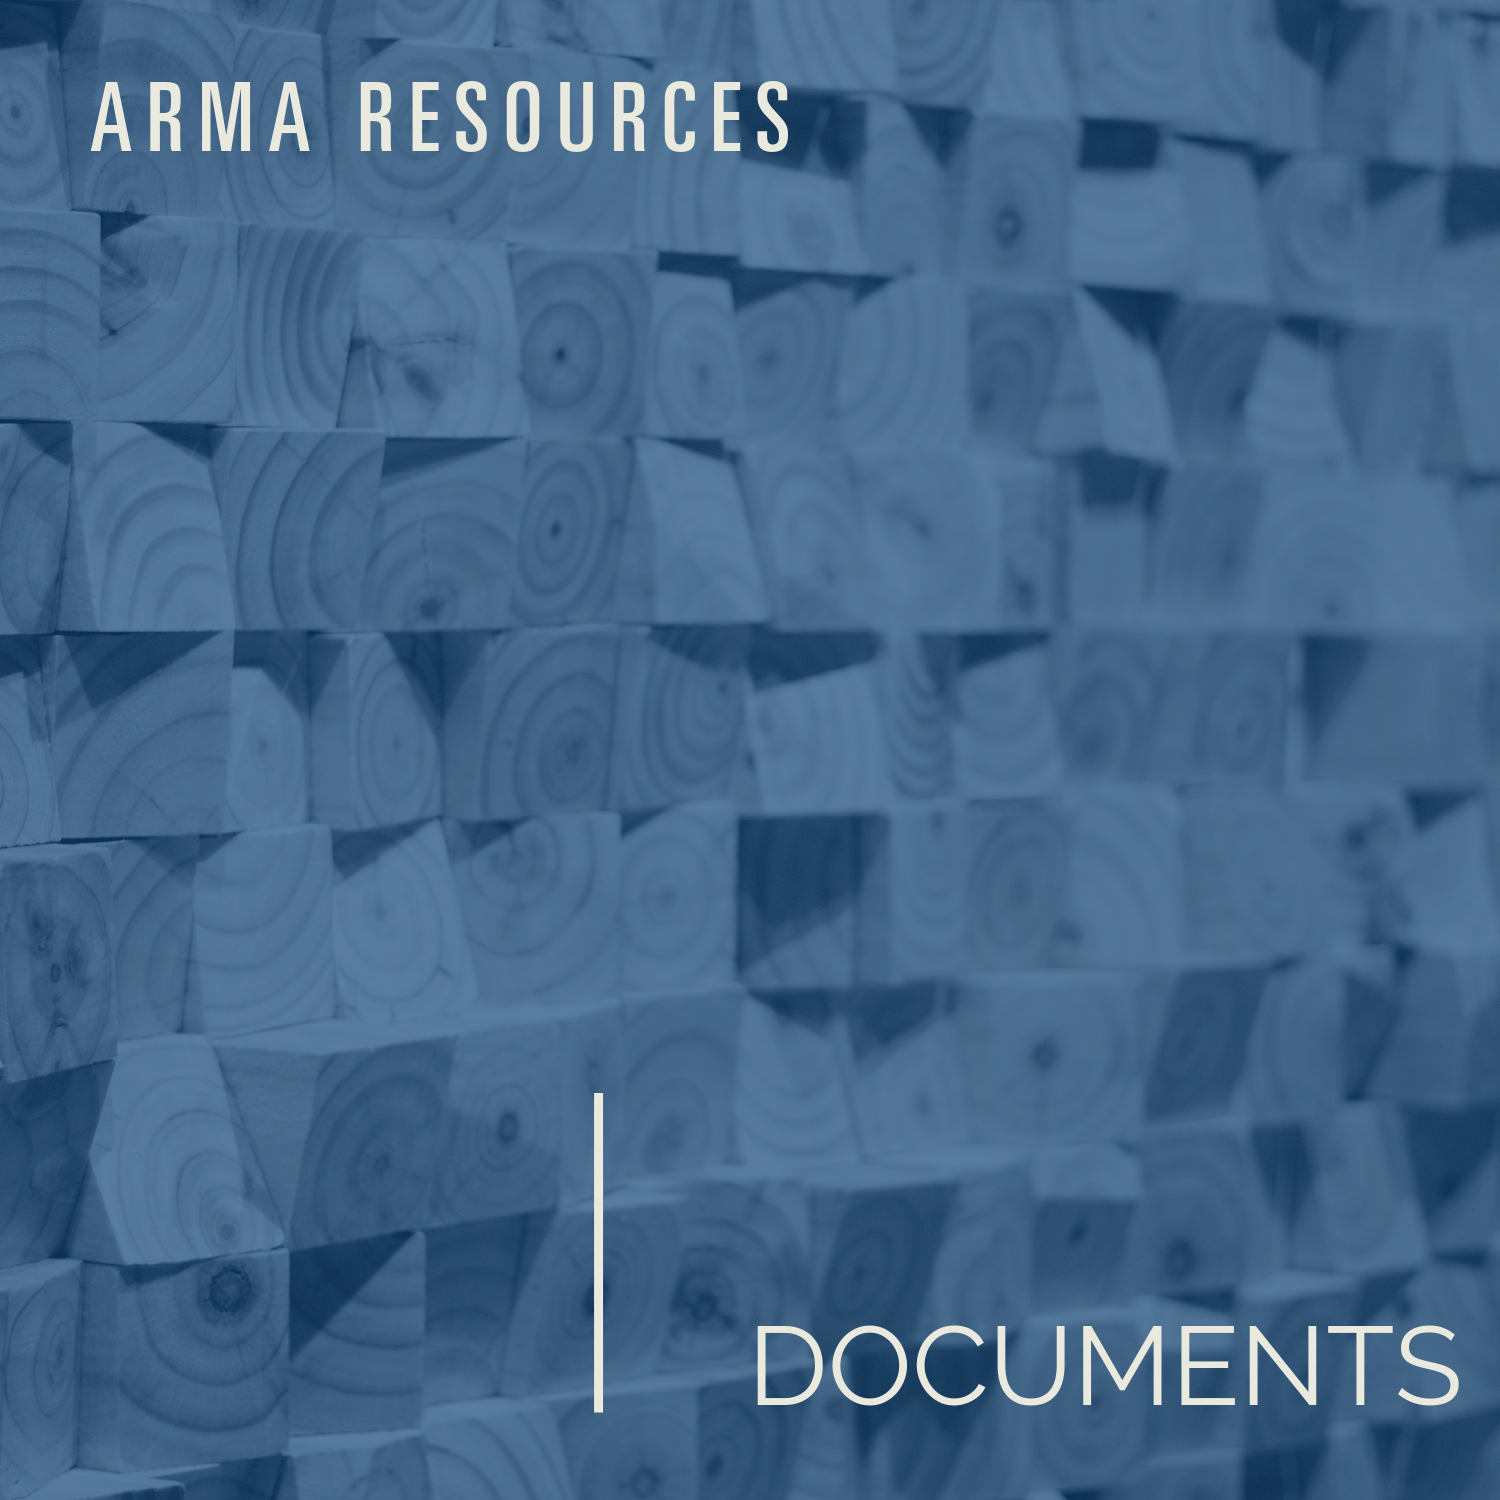 Document-Related Resources